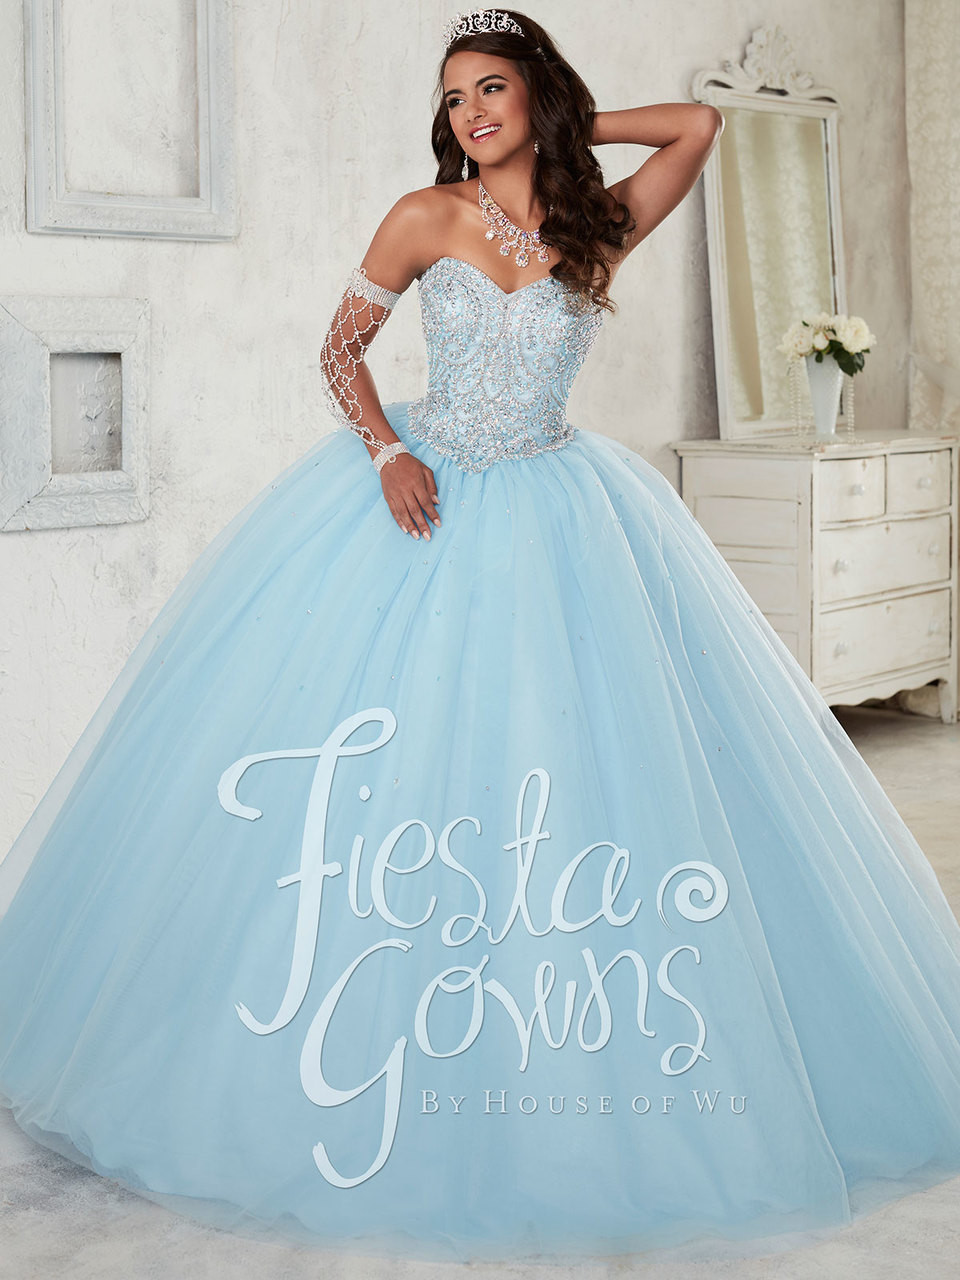 3cfa3c50be6 Light blue quinceanera dress with silver stones and plain tulle skirt by  fiesta gowns 56298